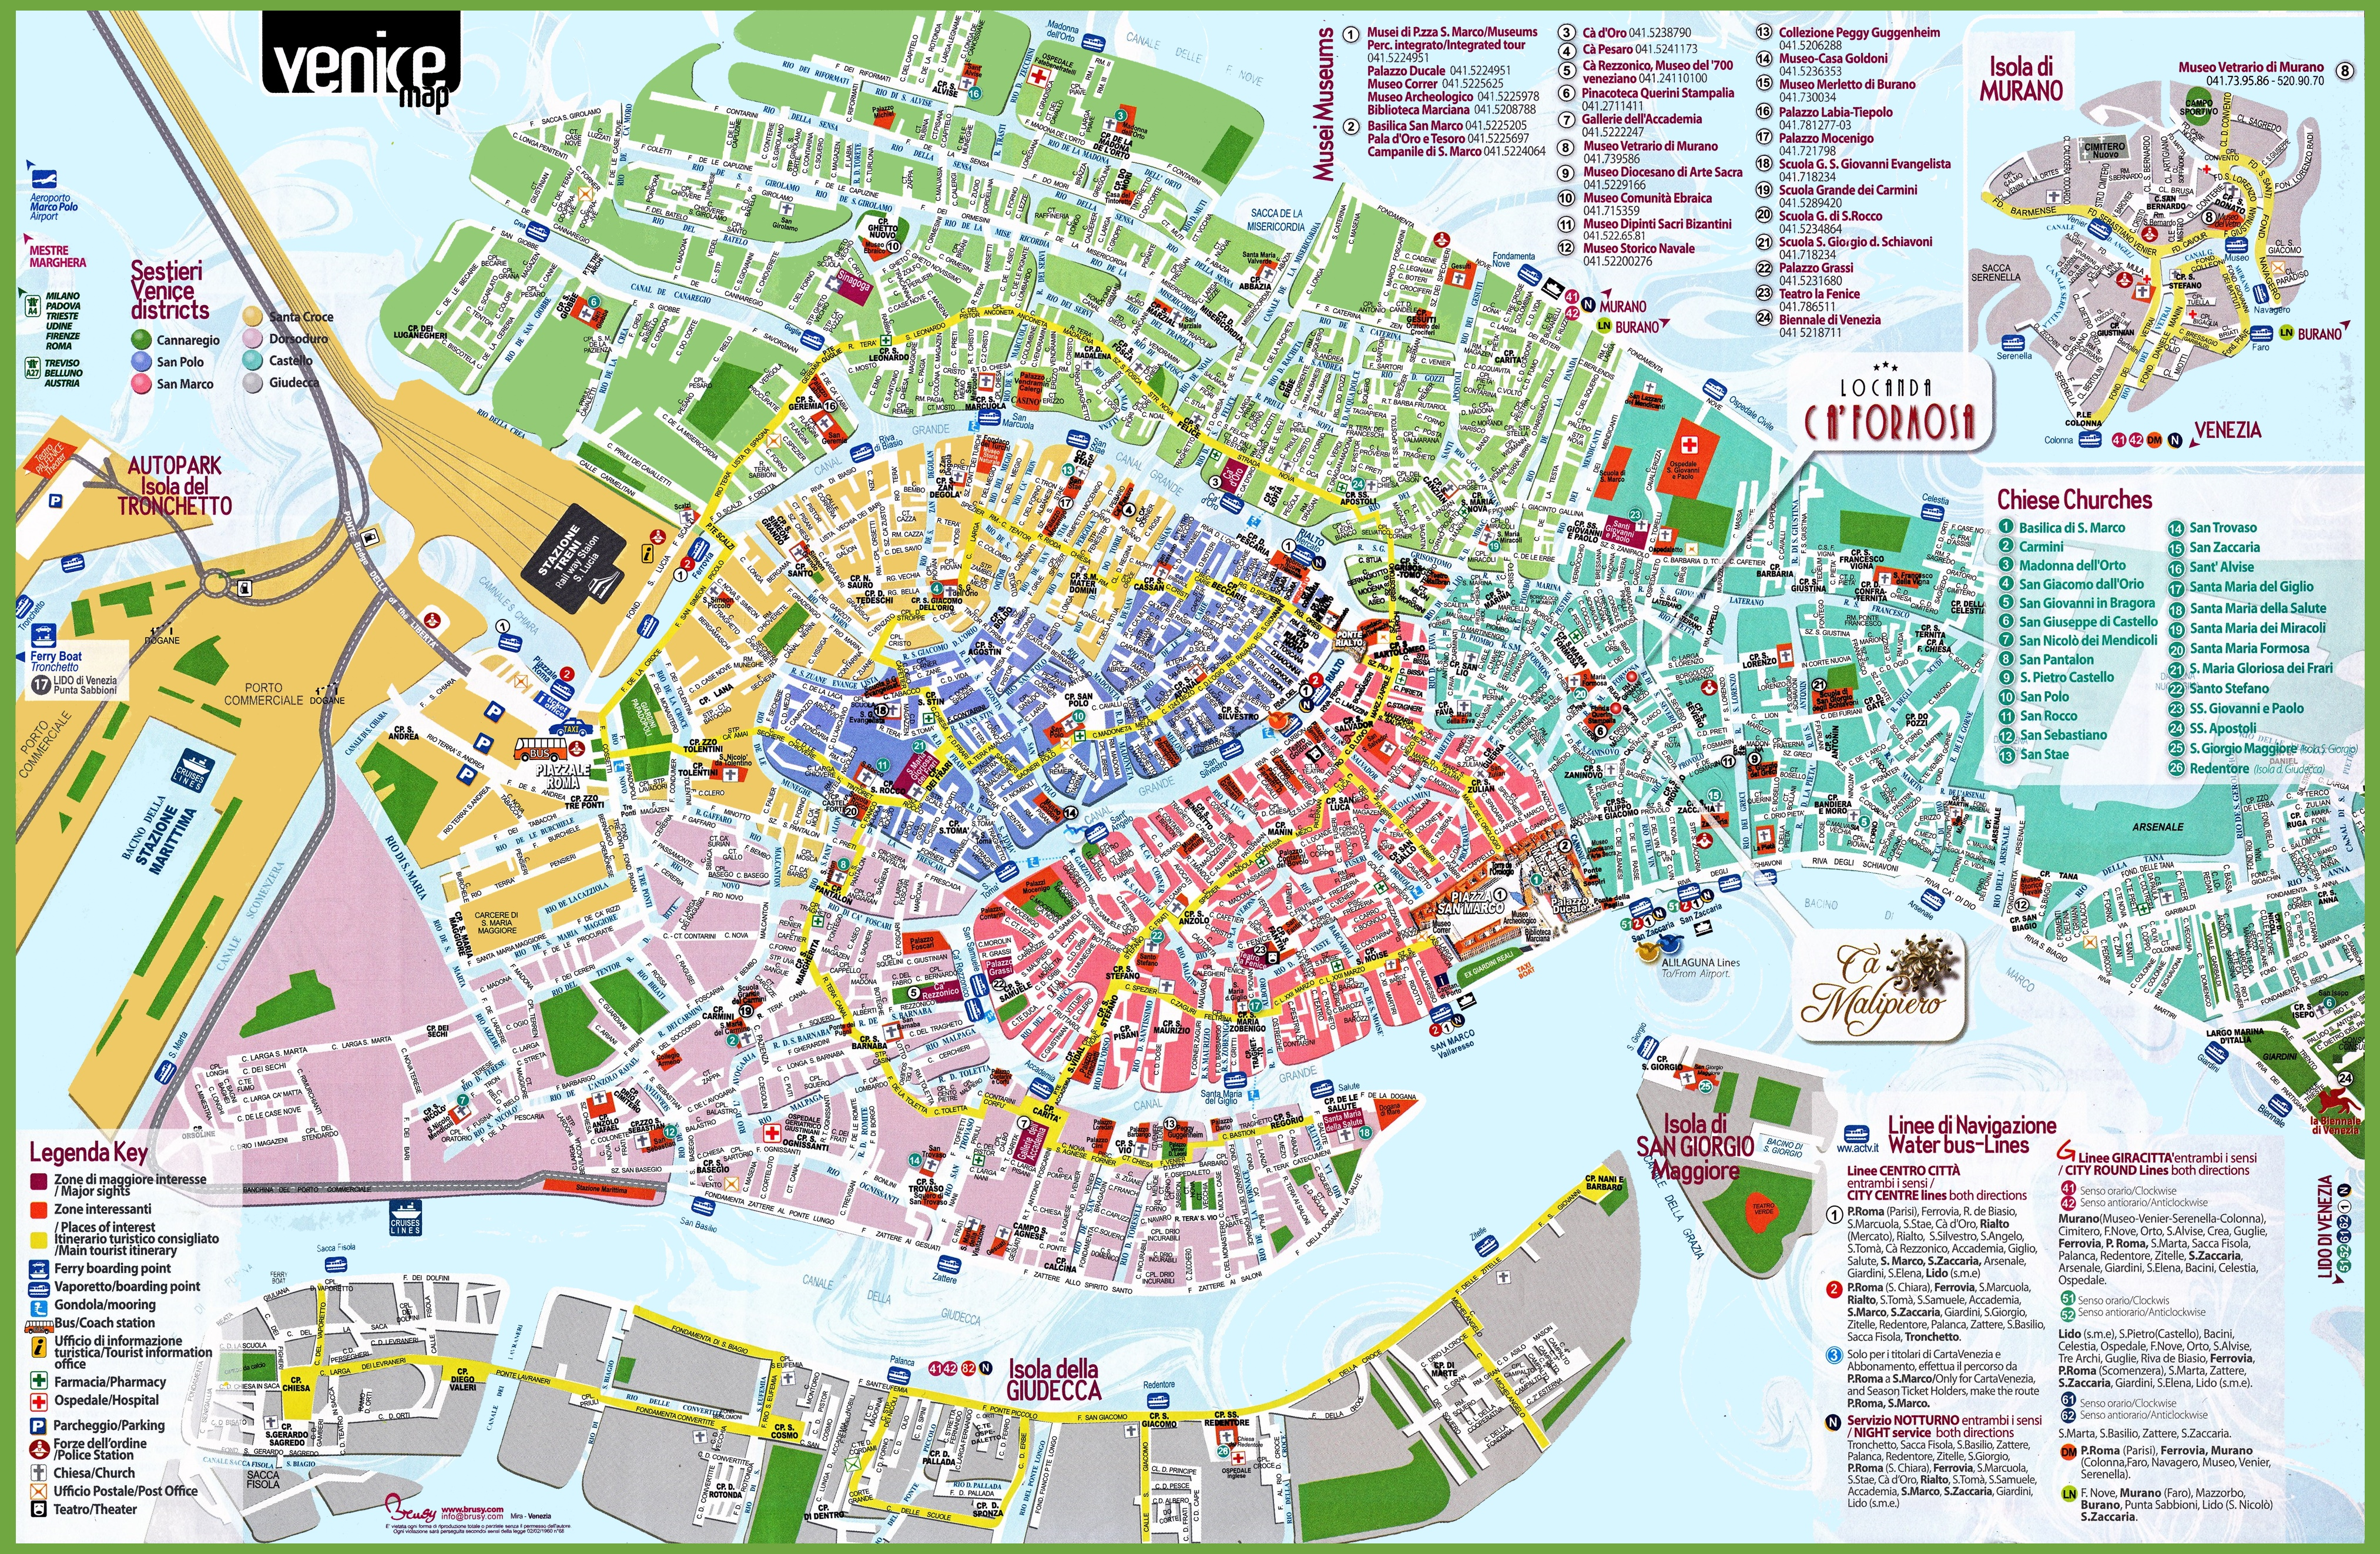 Venice Italy Map Venice tourist attractions map Venice Italy Map